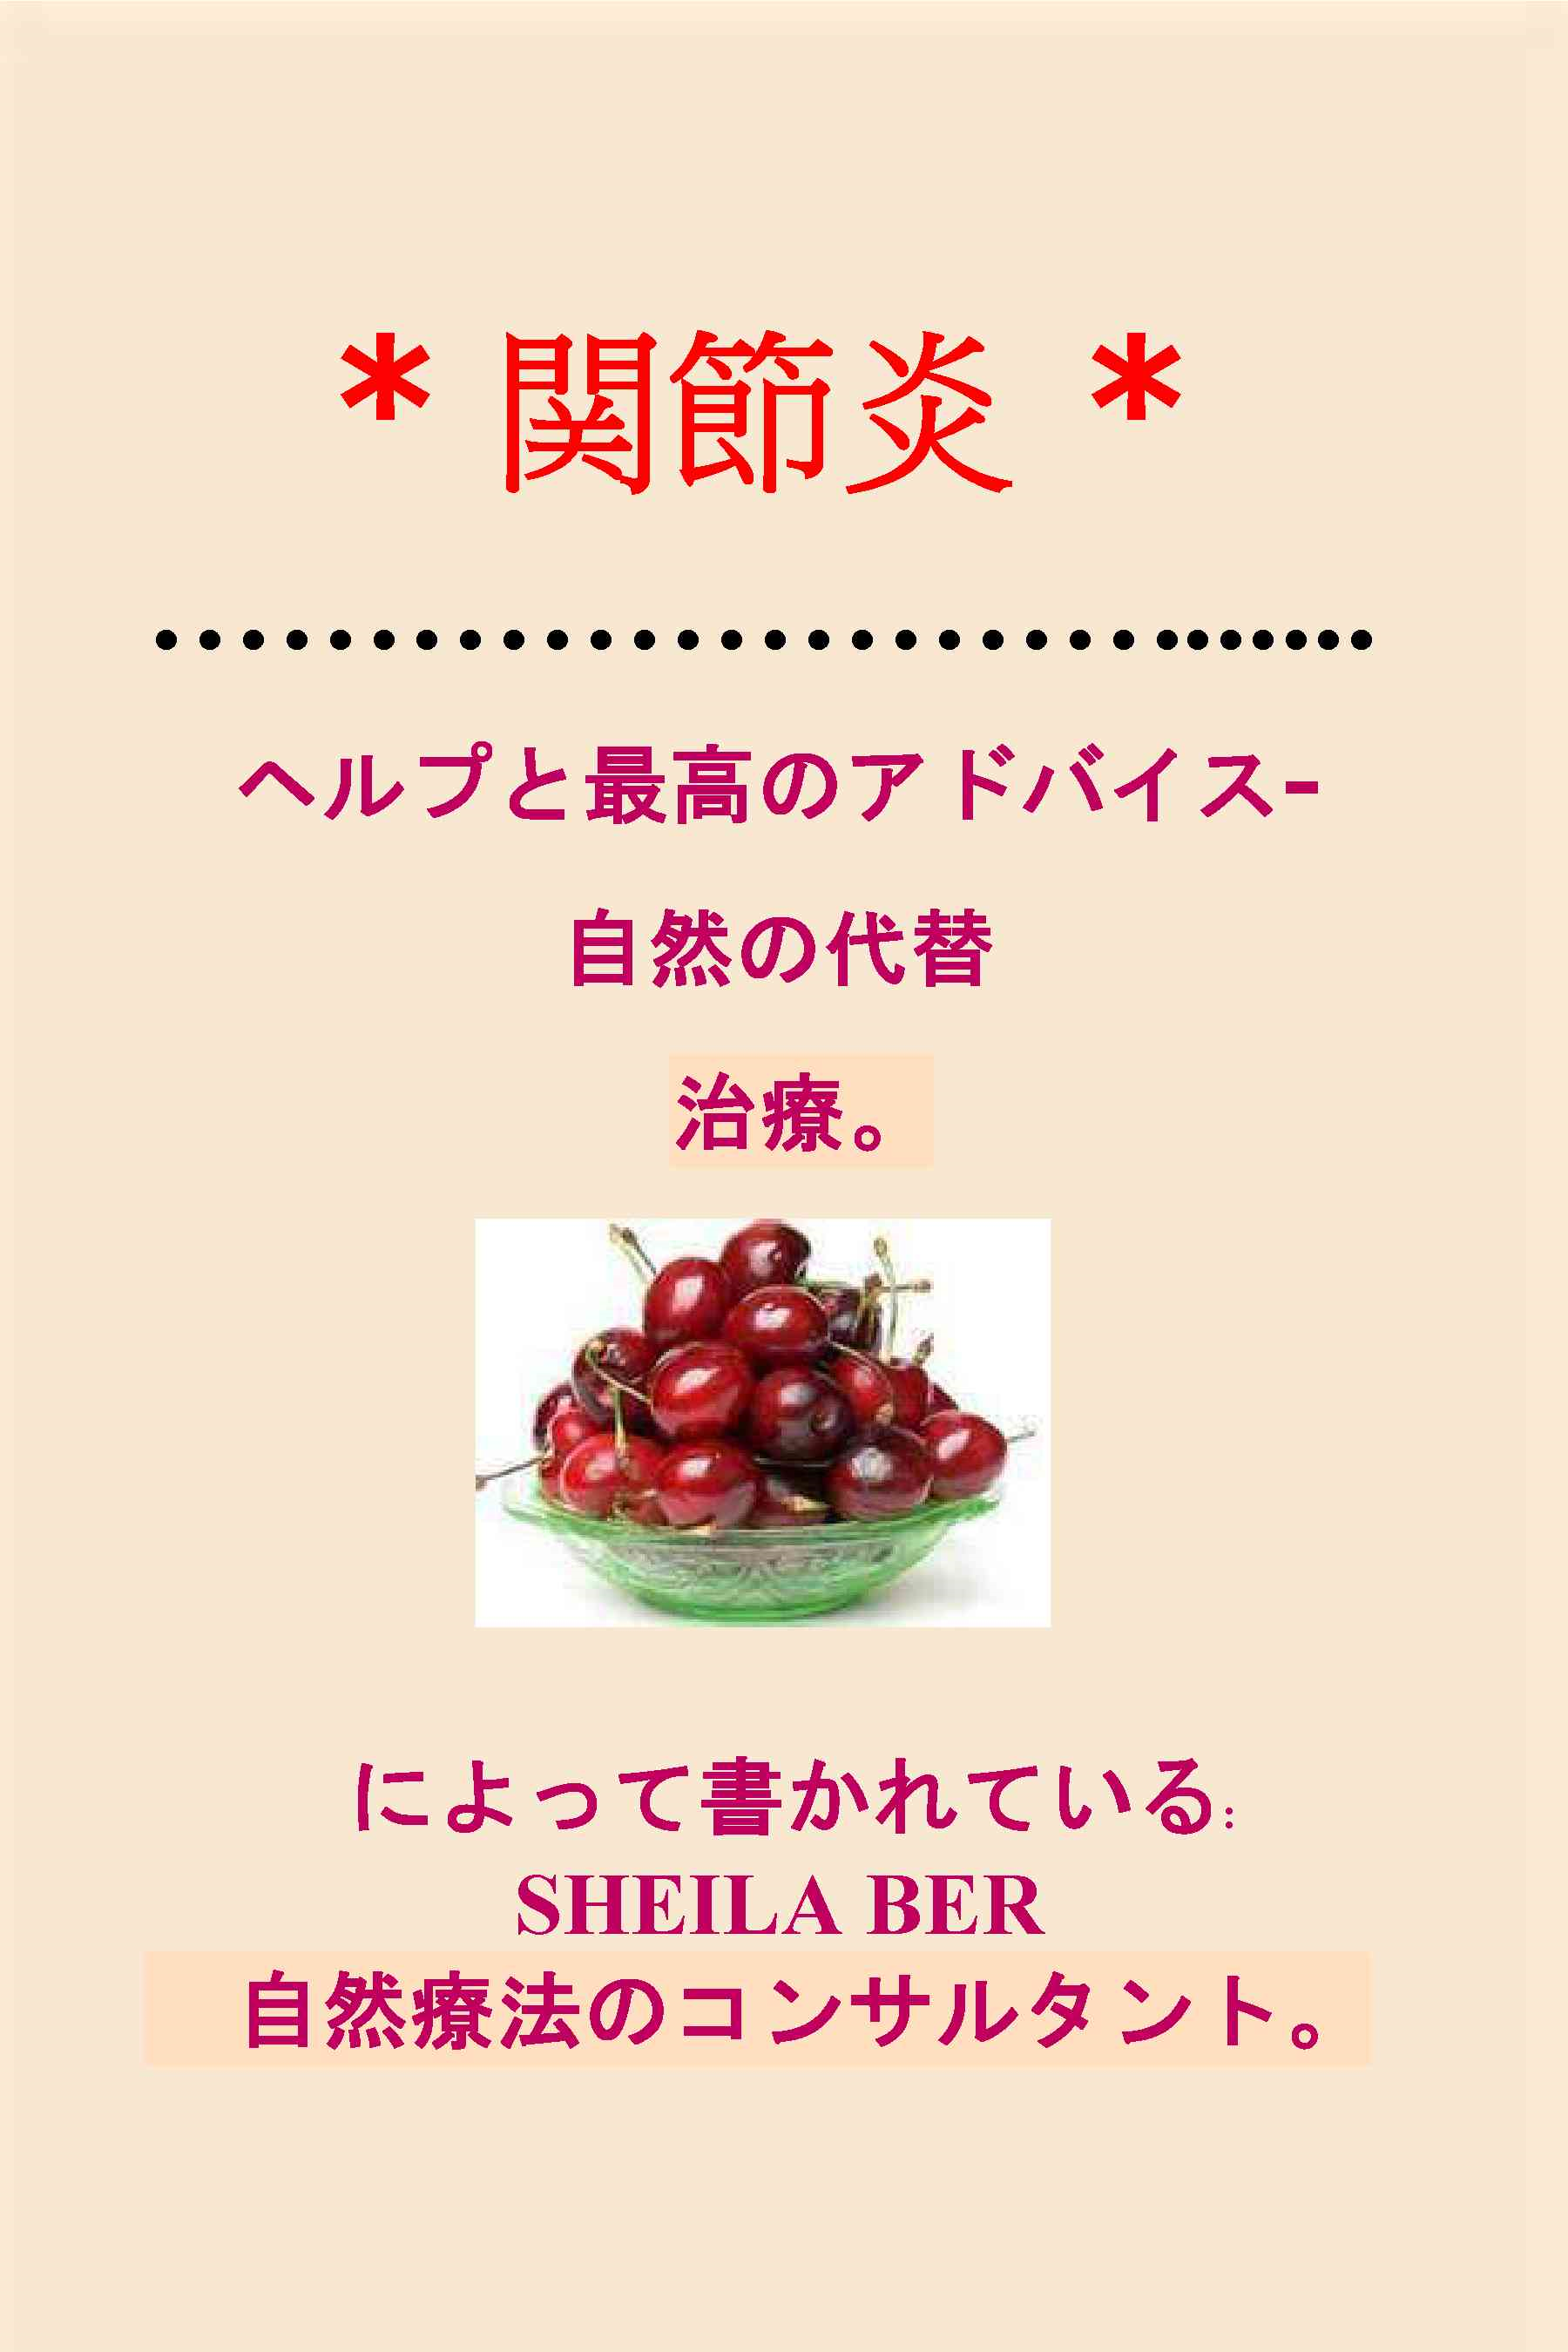 * ARTHRITIS*  HELP and BEST ADVICE - NATURAL ALTERNATIVE. JAPANESE Edition. Written by SHEILA BER.